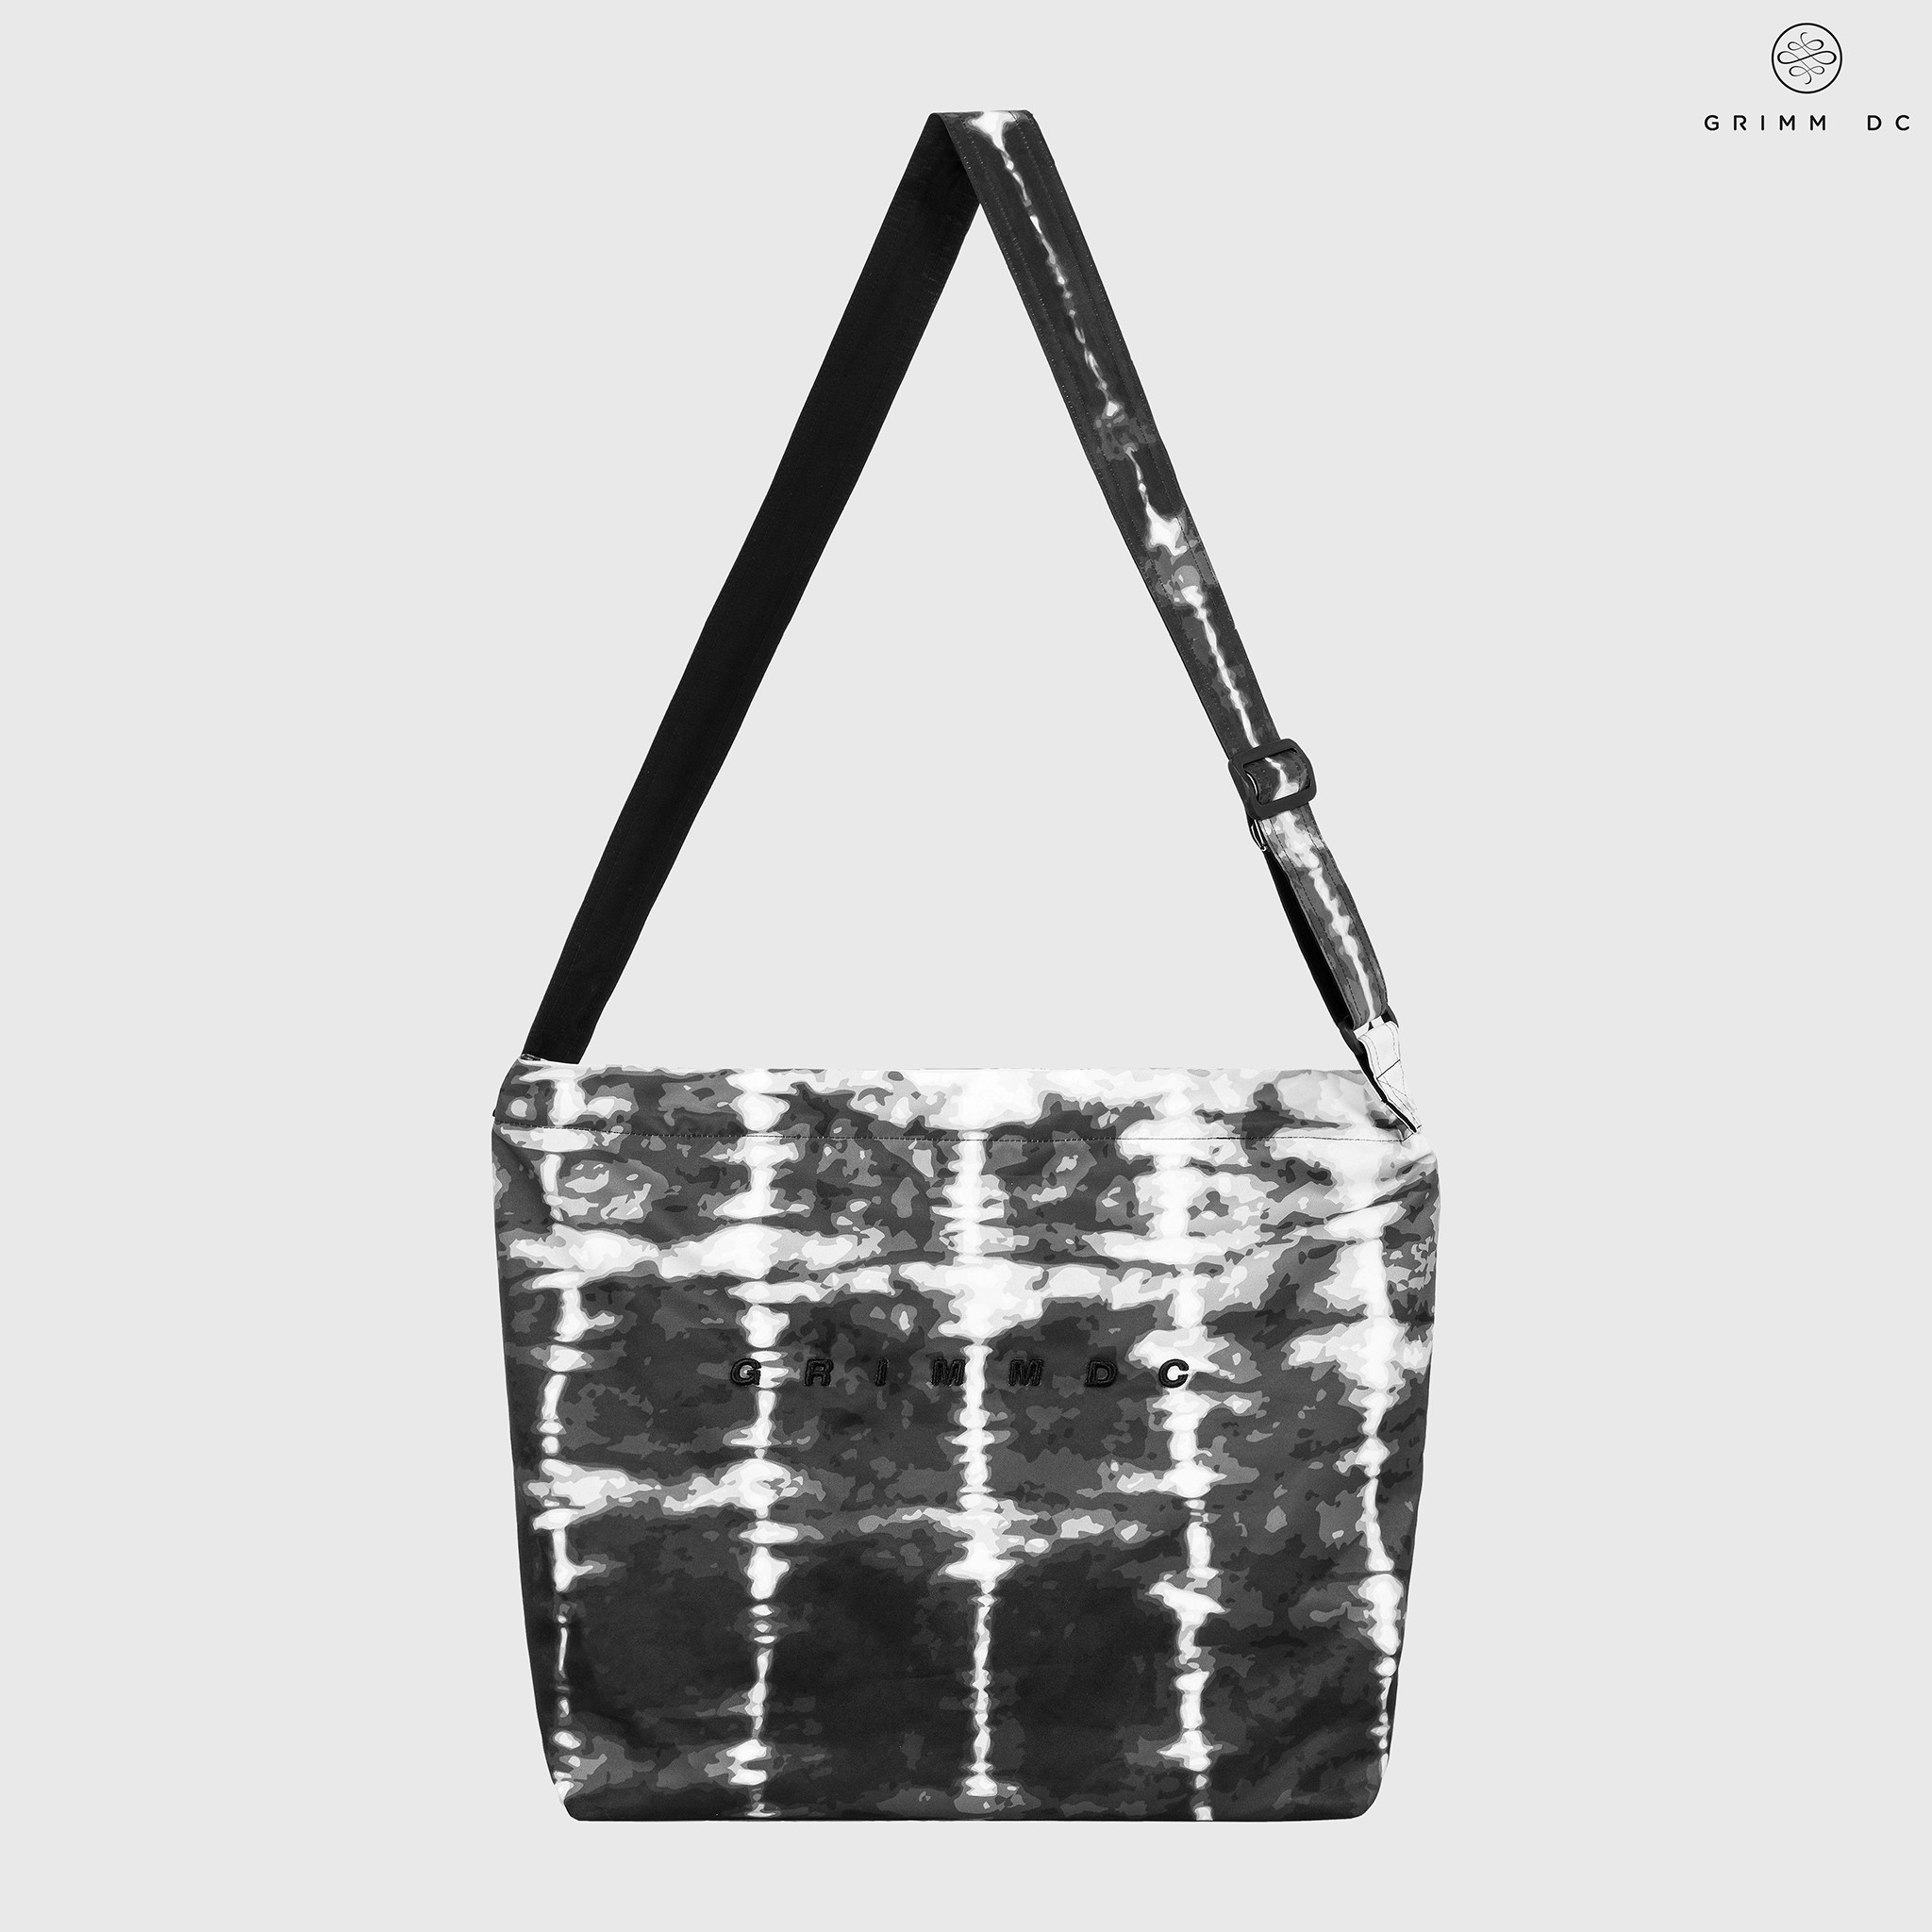 Volcanic Ash shoulder bag